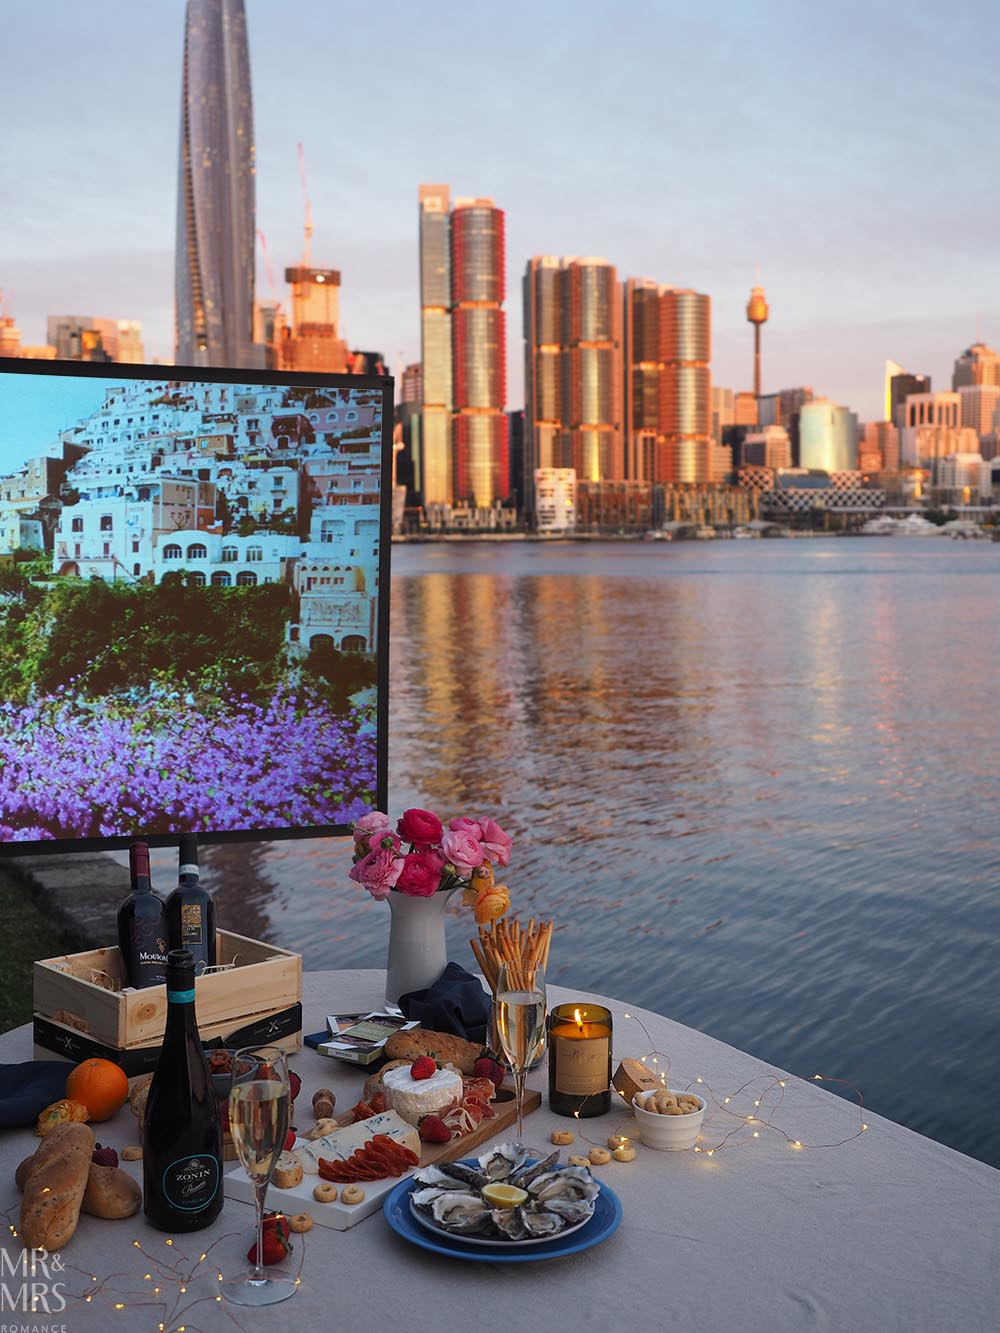 How to make DIY outdoor open-air cinema at home